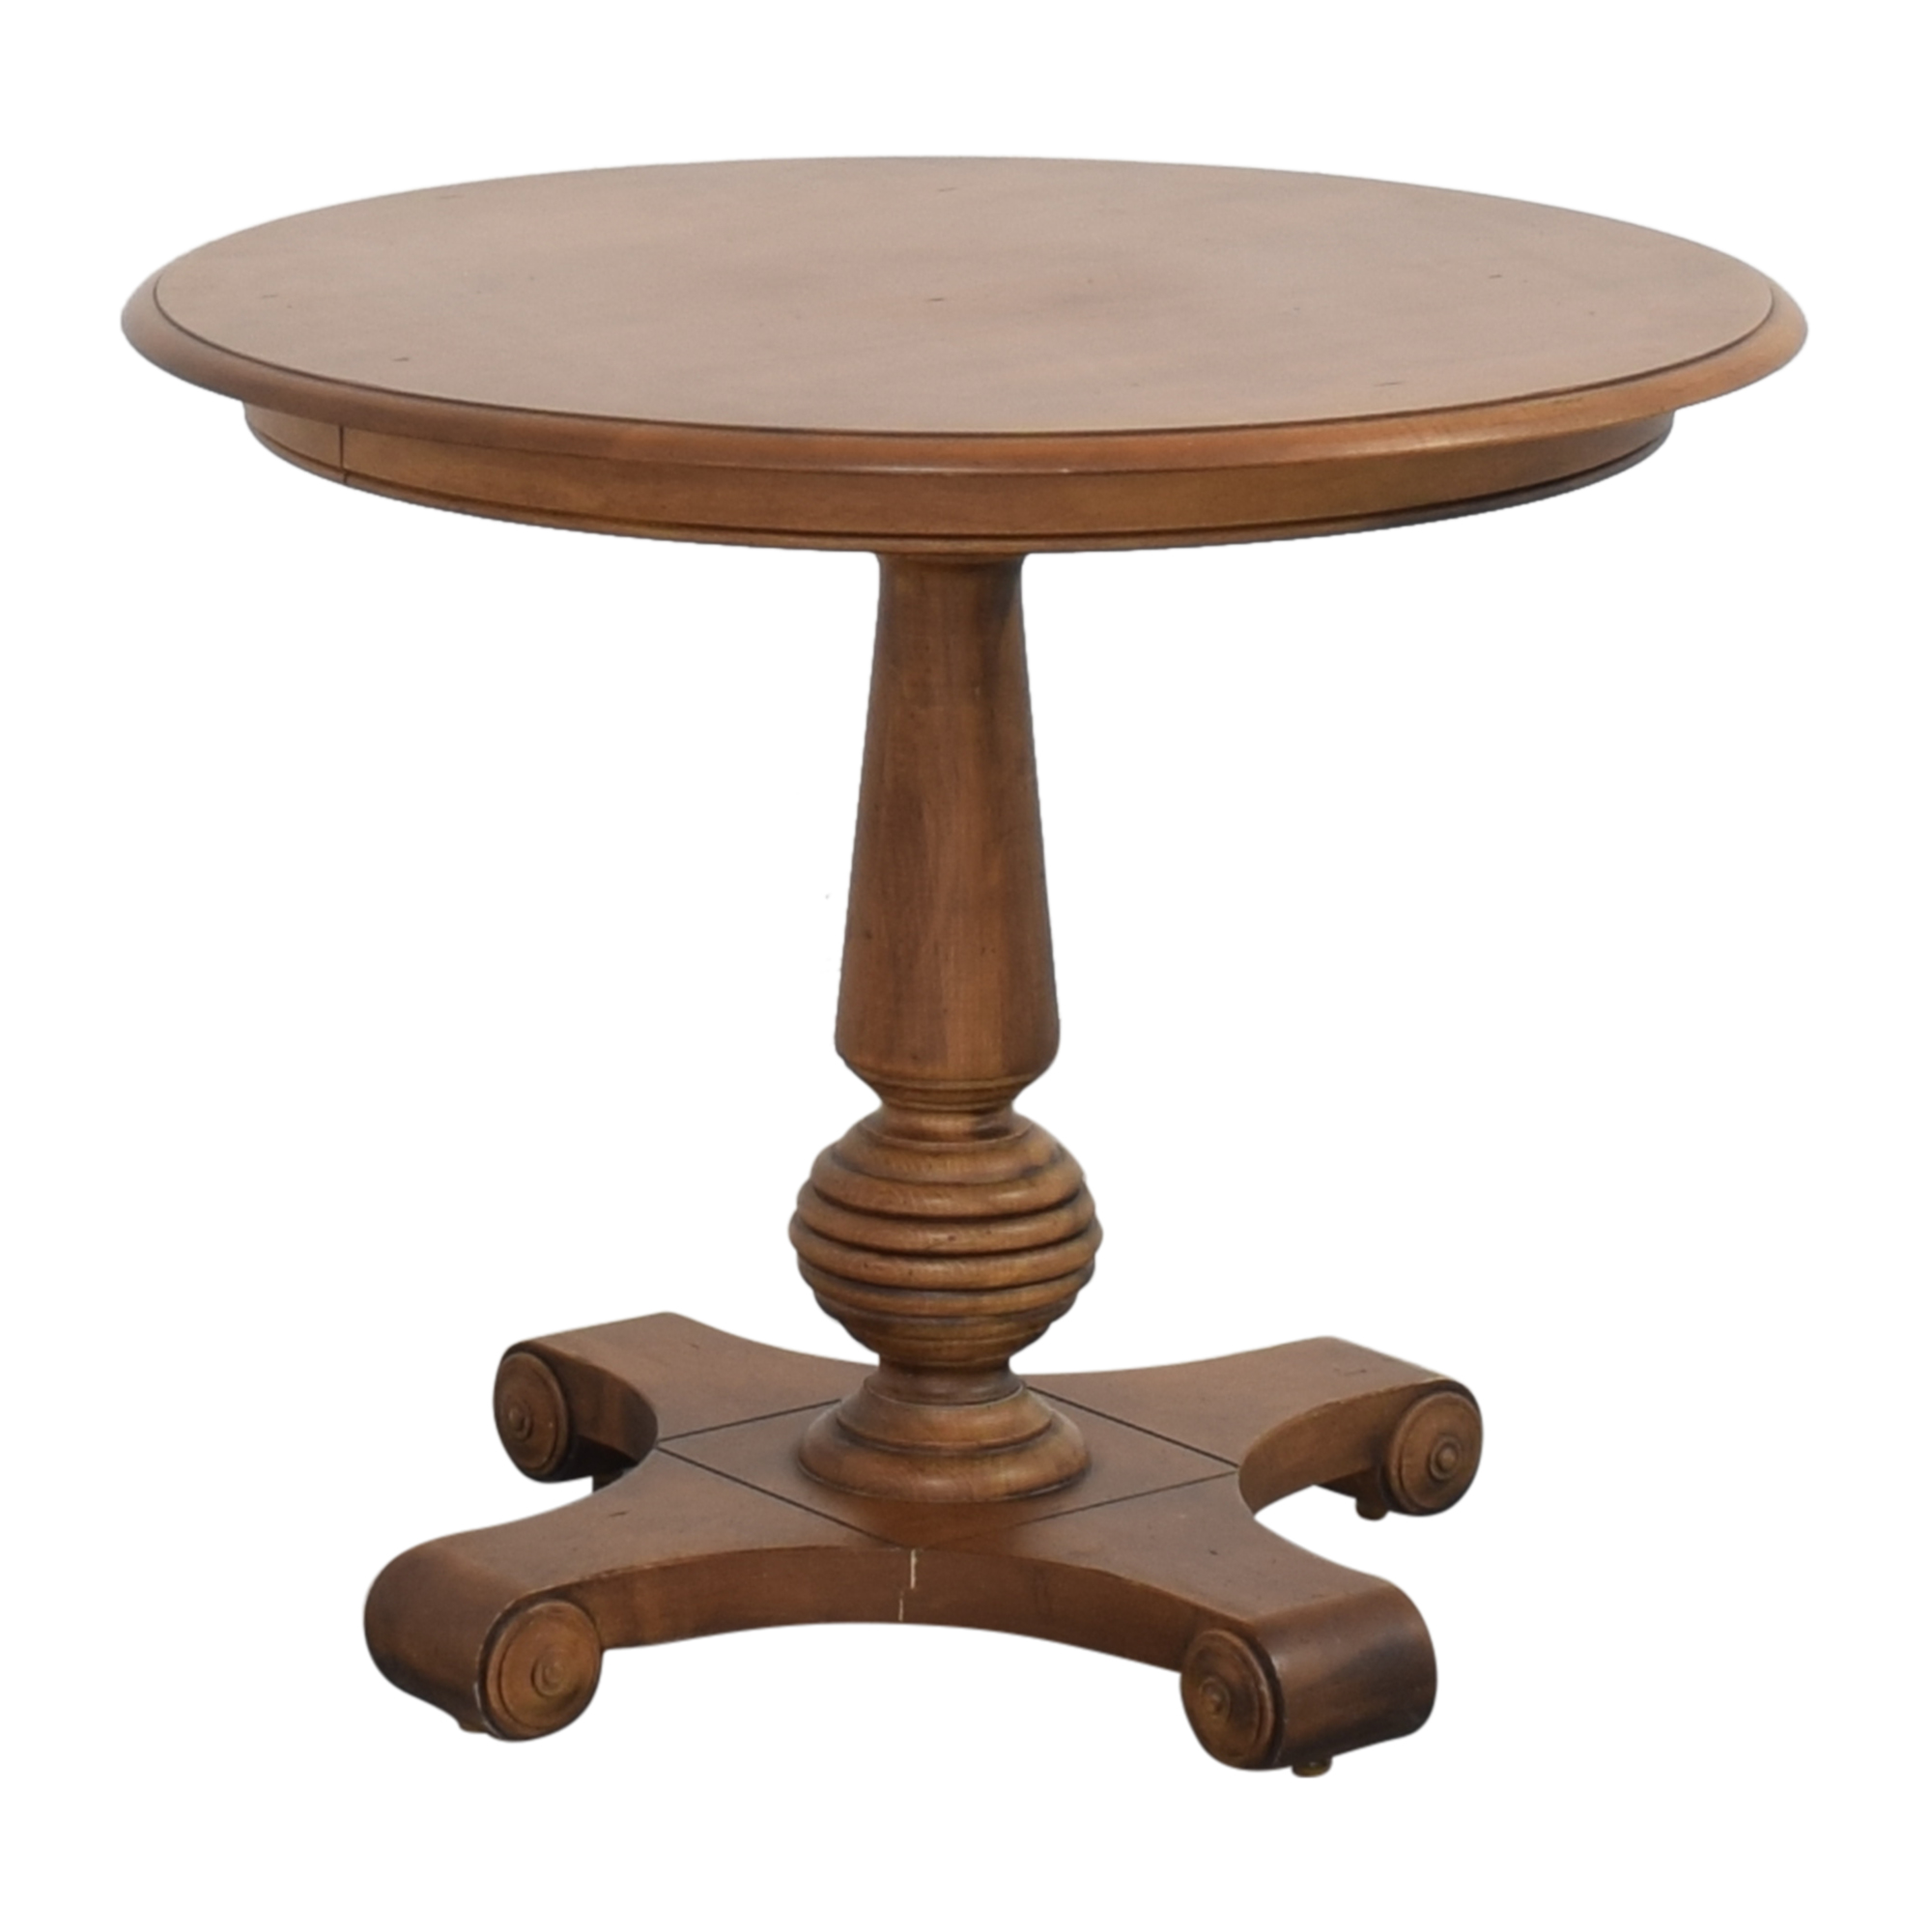 Ethan Allen Ethan Allen New Country Round Side Table dimensions